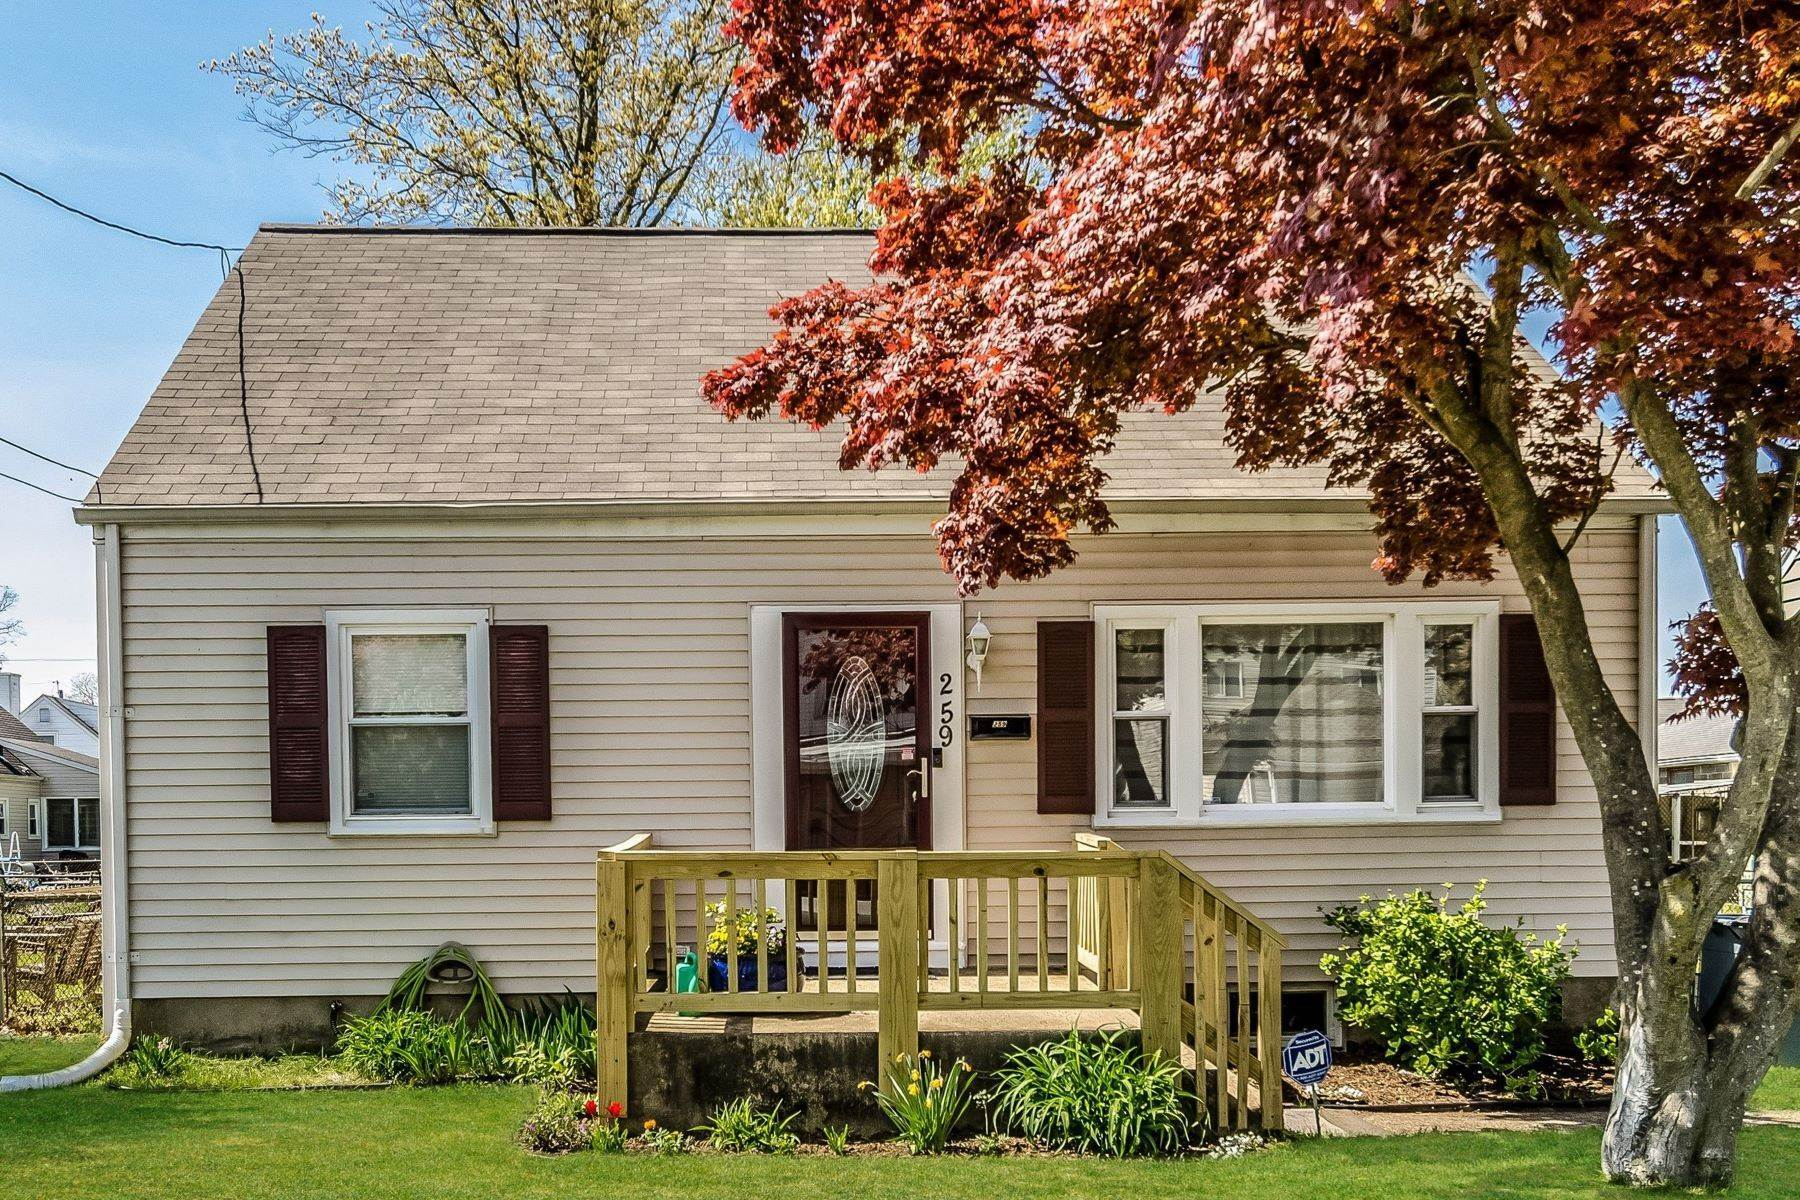 Property for Sale at A Sweet Classic Cape Cod in a Quiet Section of Broad Street Park 259 McClellan Avenue Hamilton, New Jersey 08610 United States